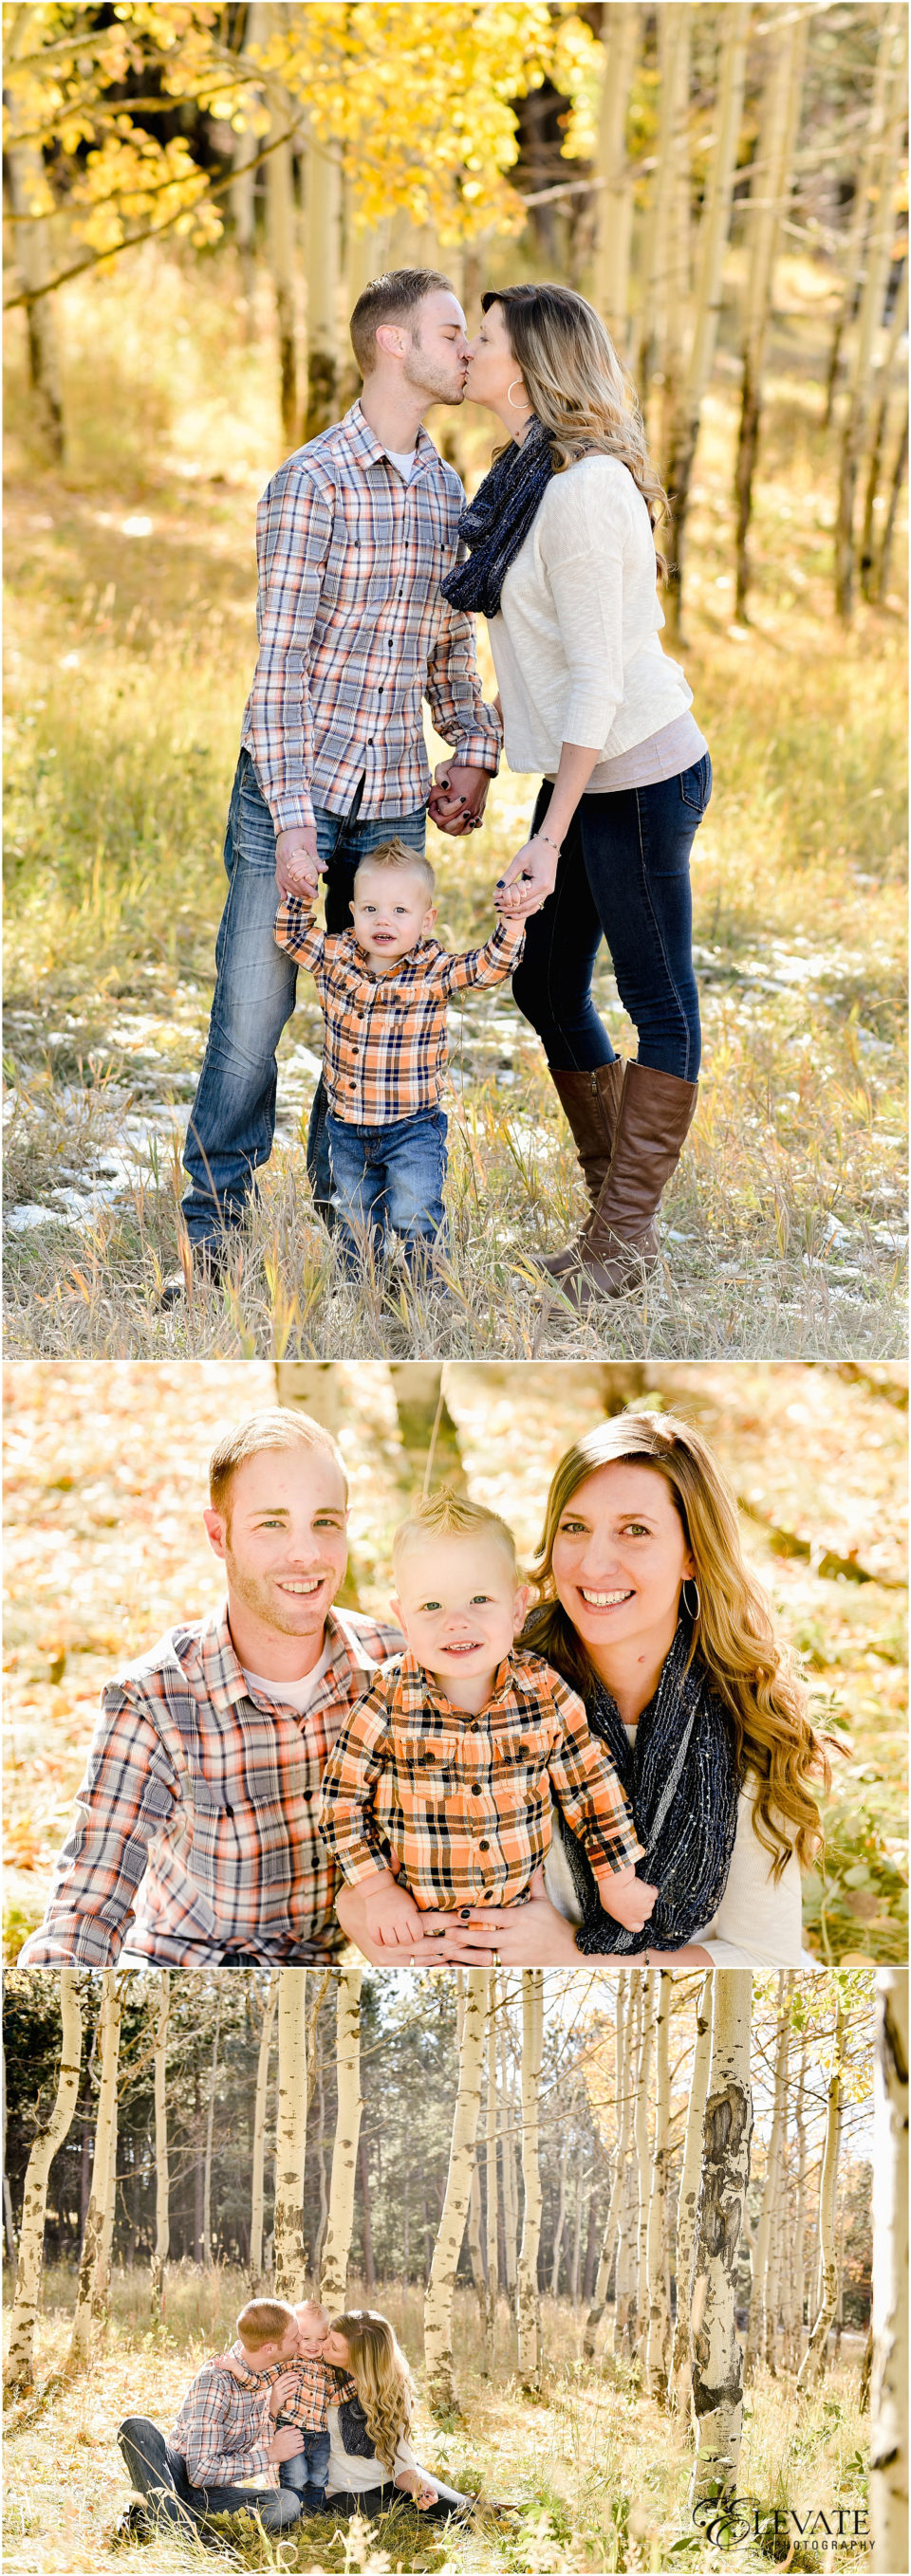 The Eldrenkamps | Fall Family Photos - Denver Wedding Photographers - Elevate BlogDenver Wedding ...